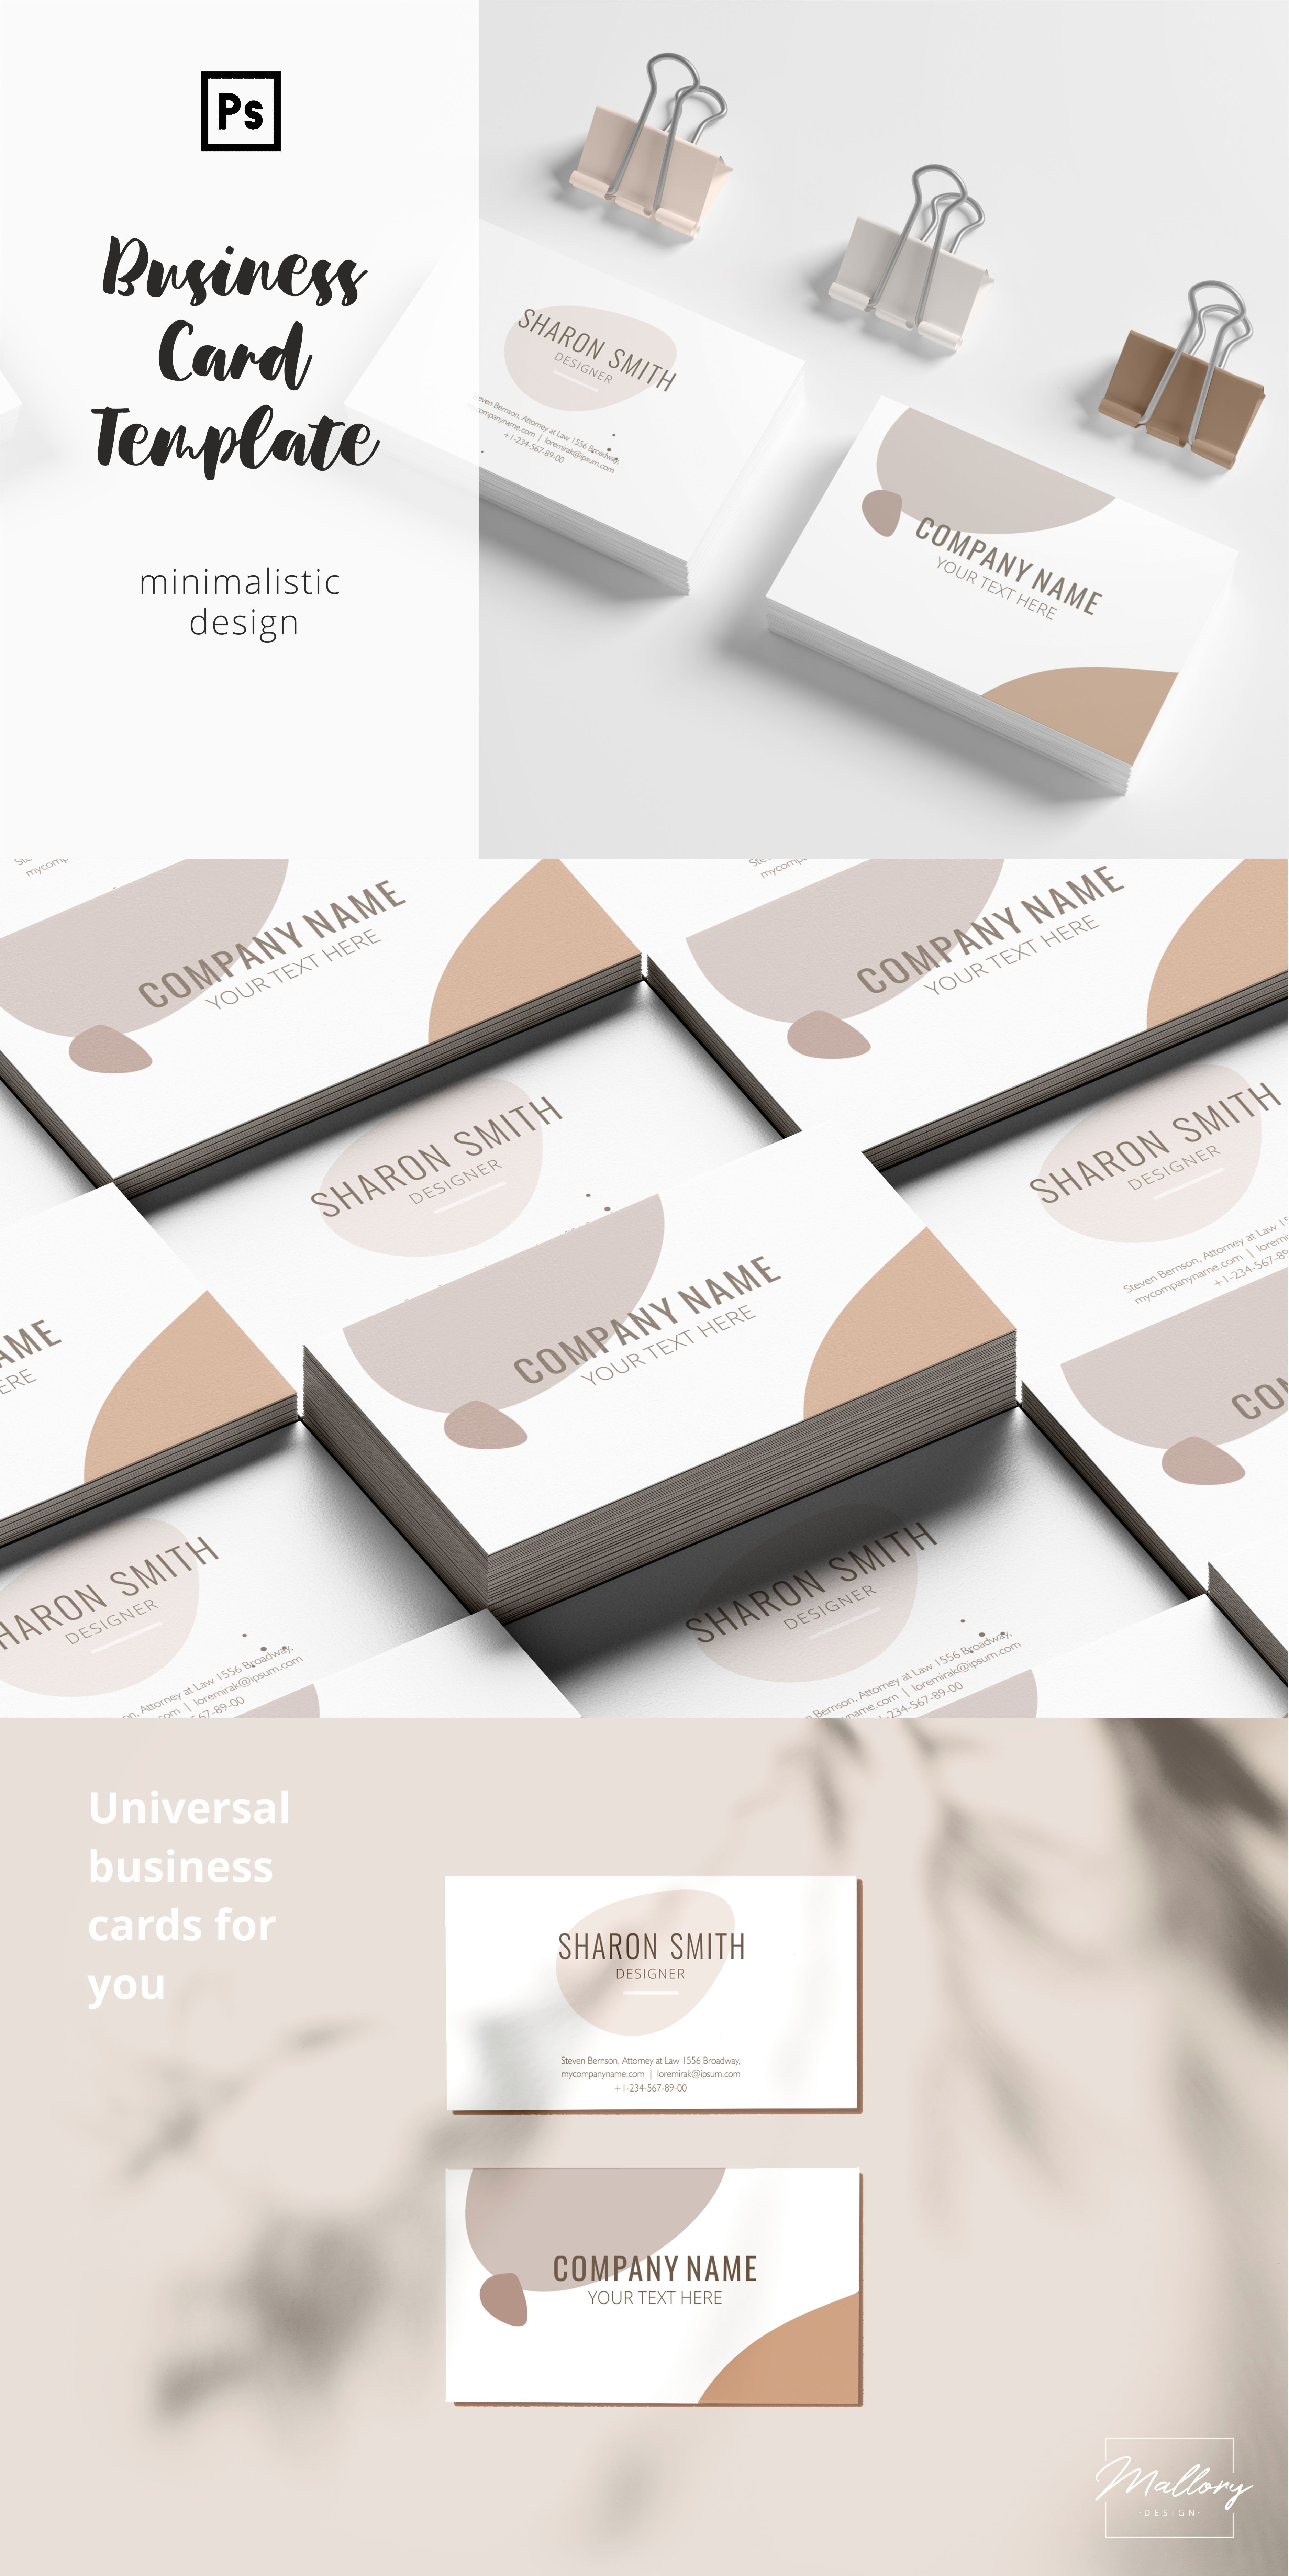 2 40 Minimalistic Business Cards Template Businesscard Geometriya Minimalizm Minimalism Trend Design Minimalist Business Cards Cards Business Card Size